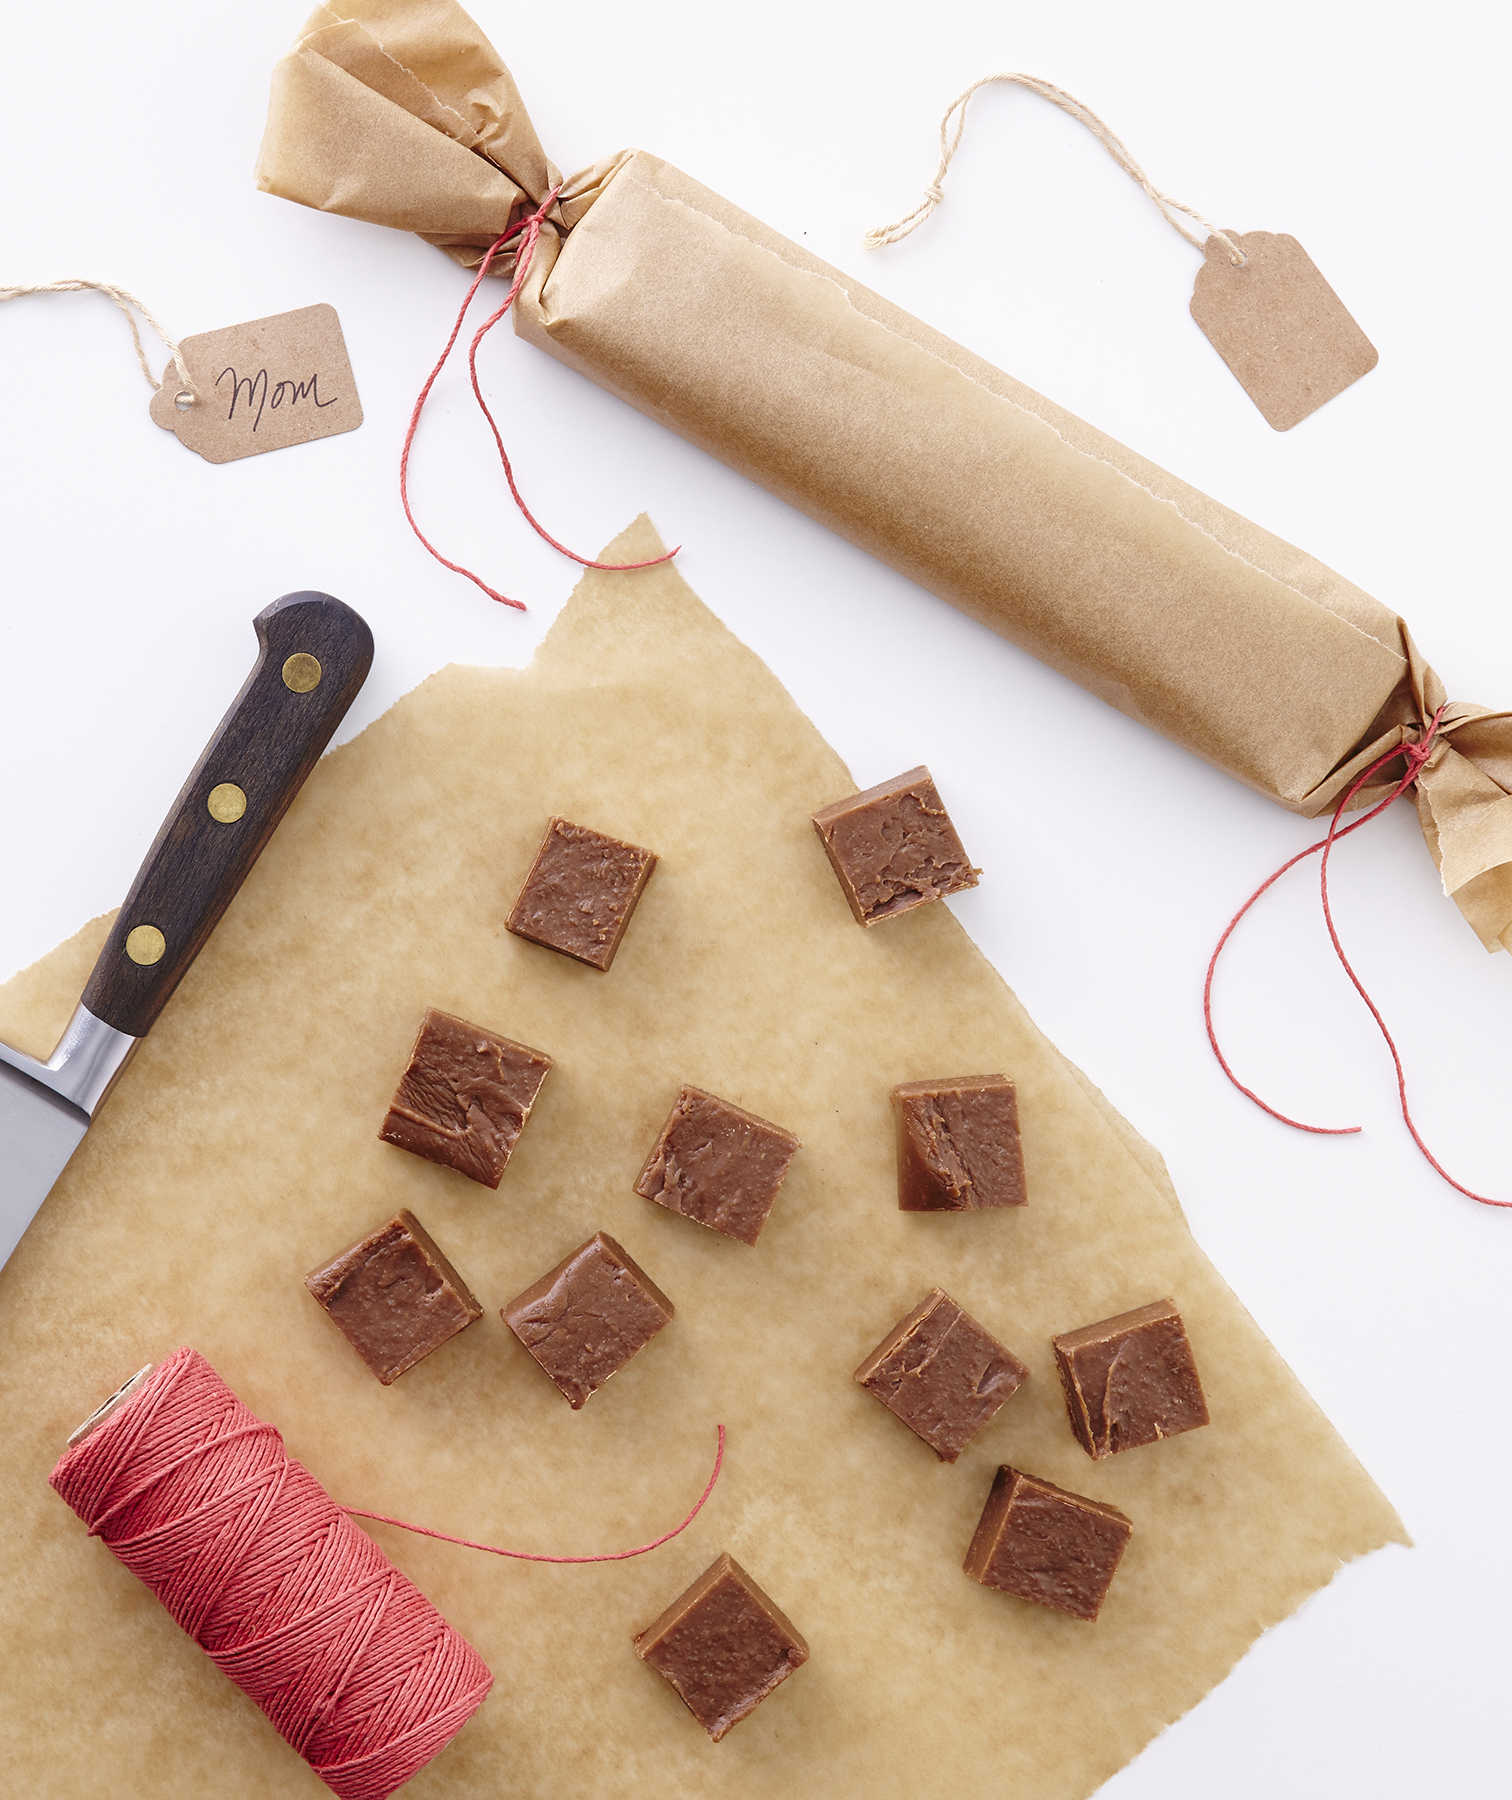 DIY Mocha Latte Fudge